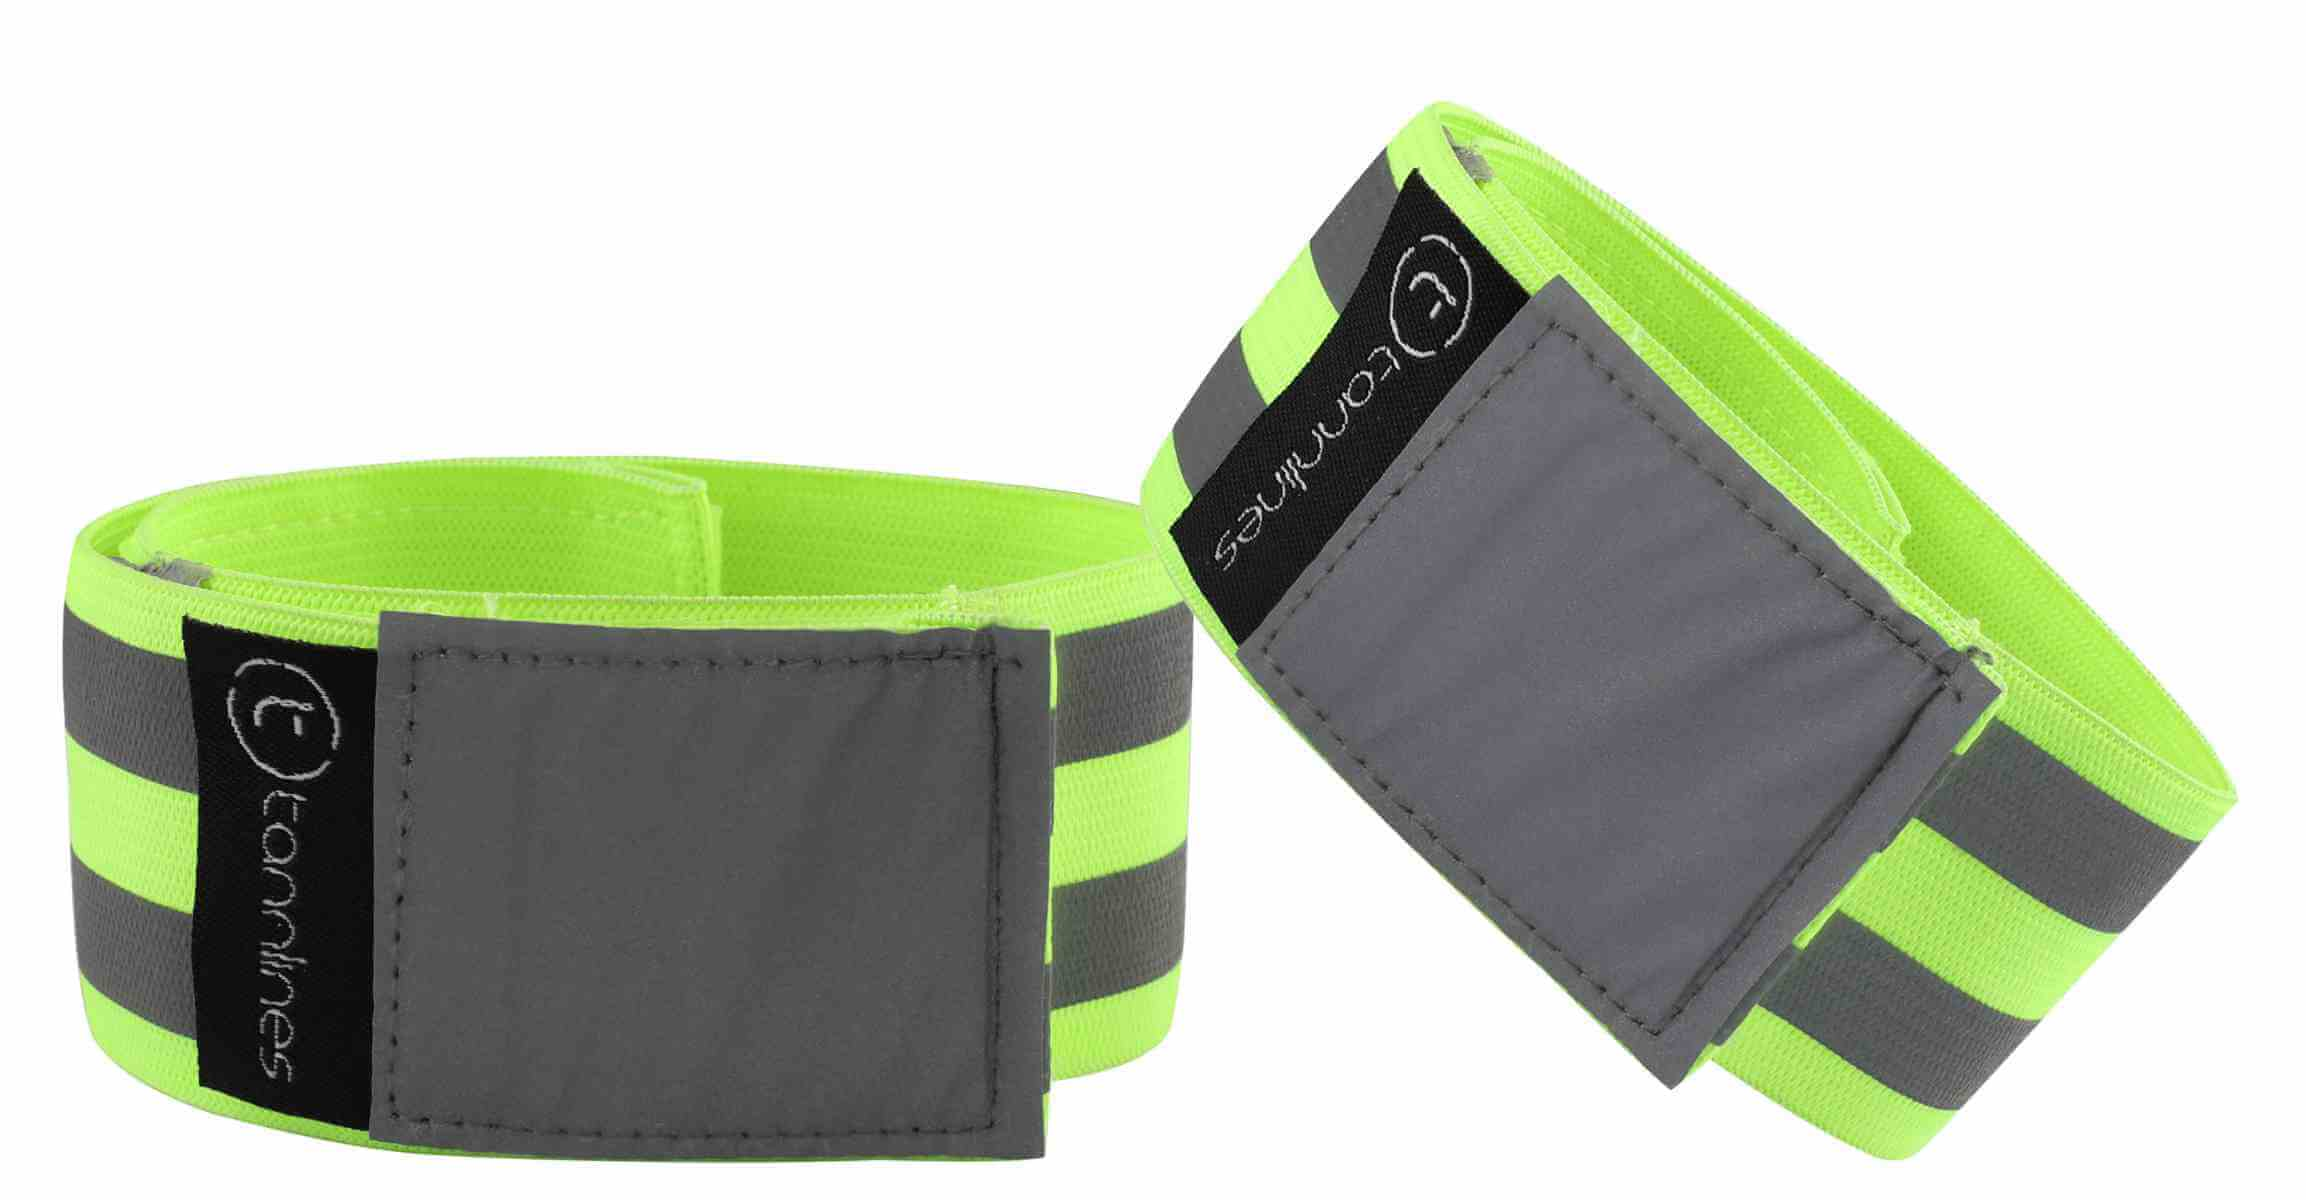 Viz40 Reflective Arm Band